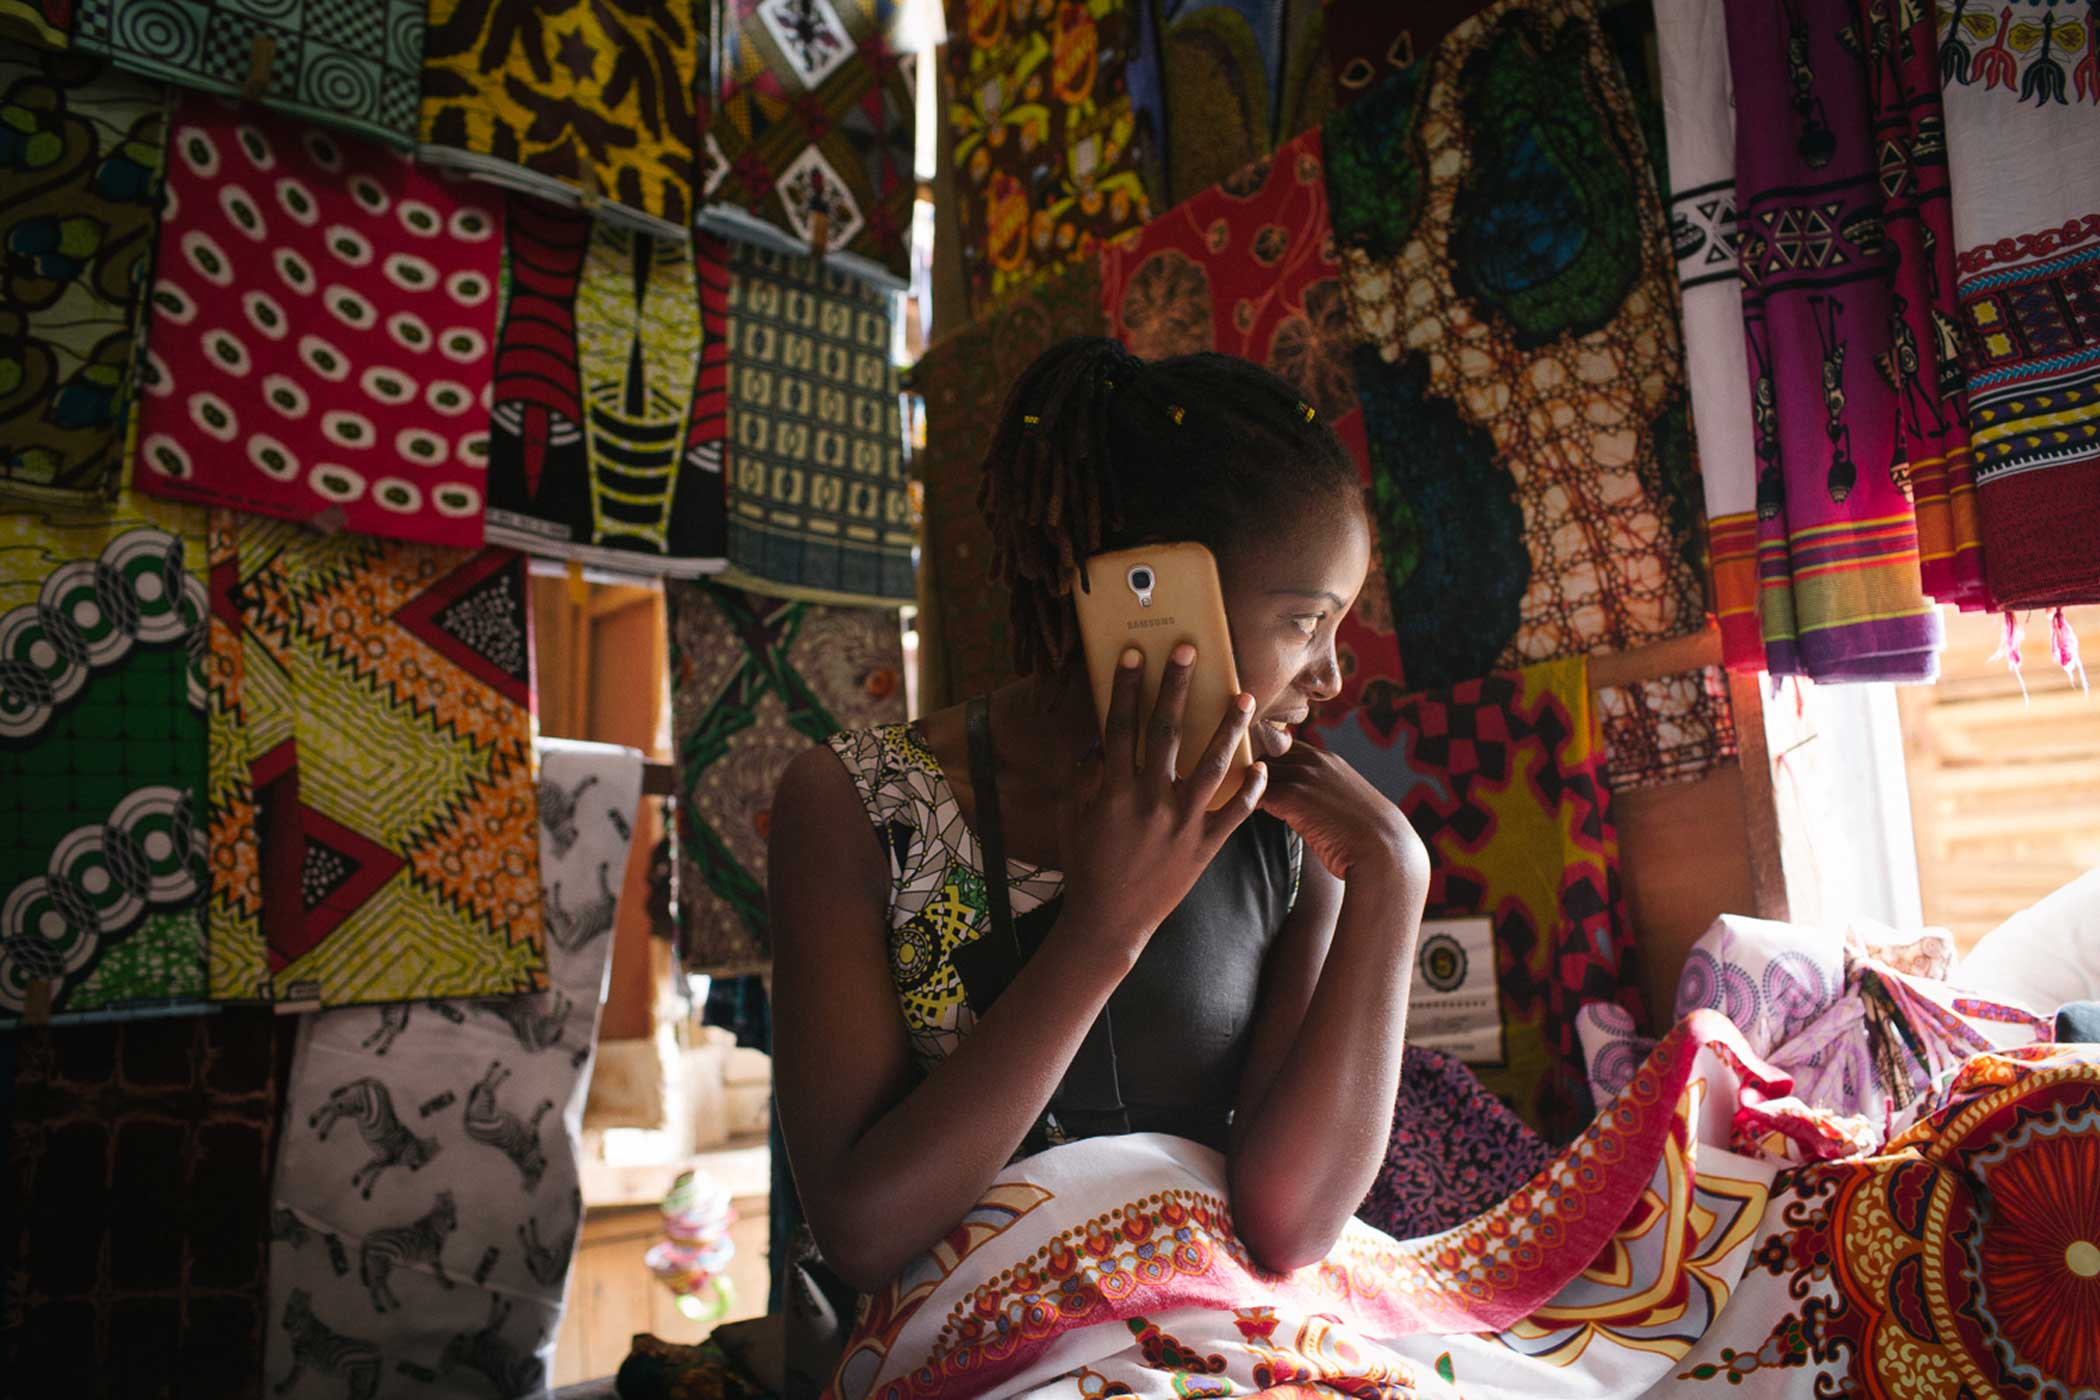 Josephine Niyigena, 25, chats with a friend on her cell phone while she sells fabric at Kimironko market in Kigali. The cellular network covers nearly 98% of the population.